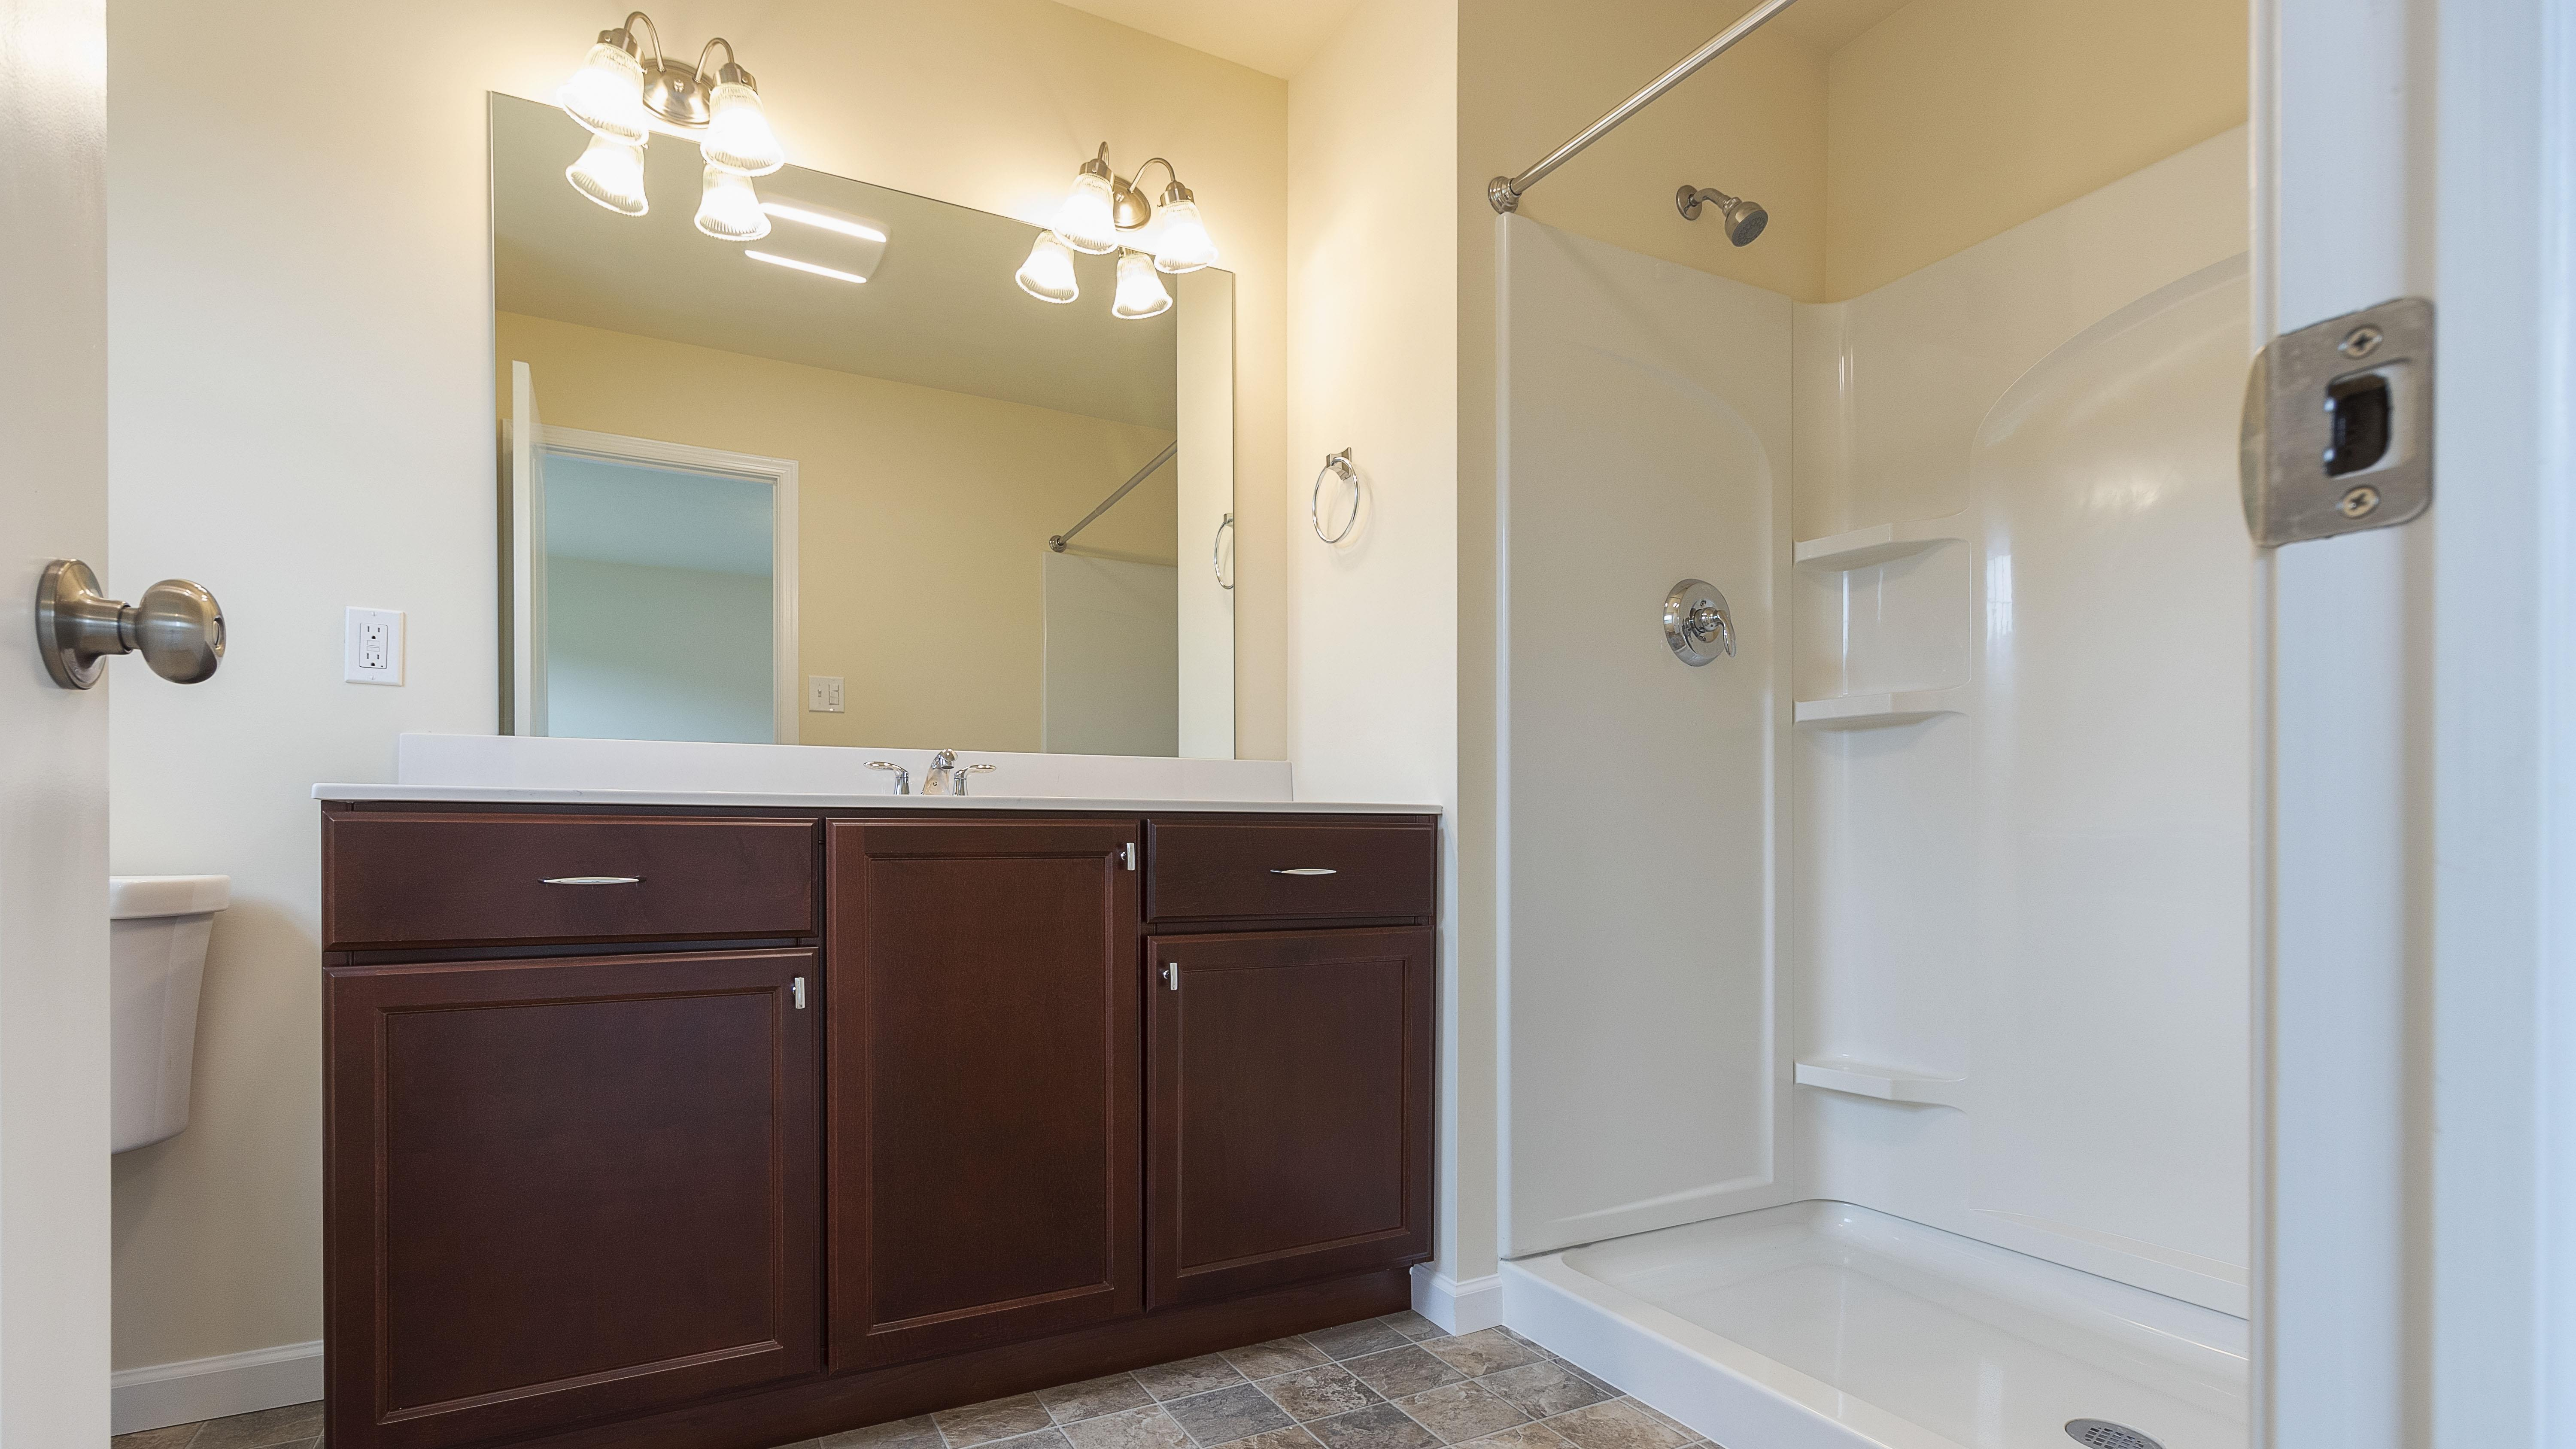 Bathroom featured in the Richfield By S & A Homes in Altoona, PA